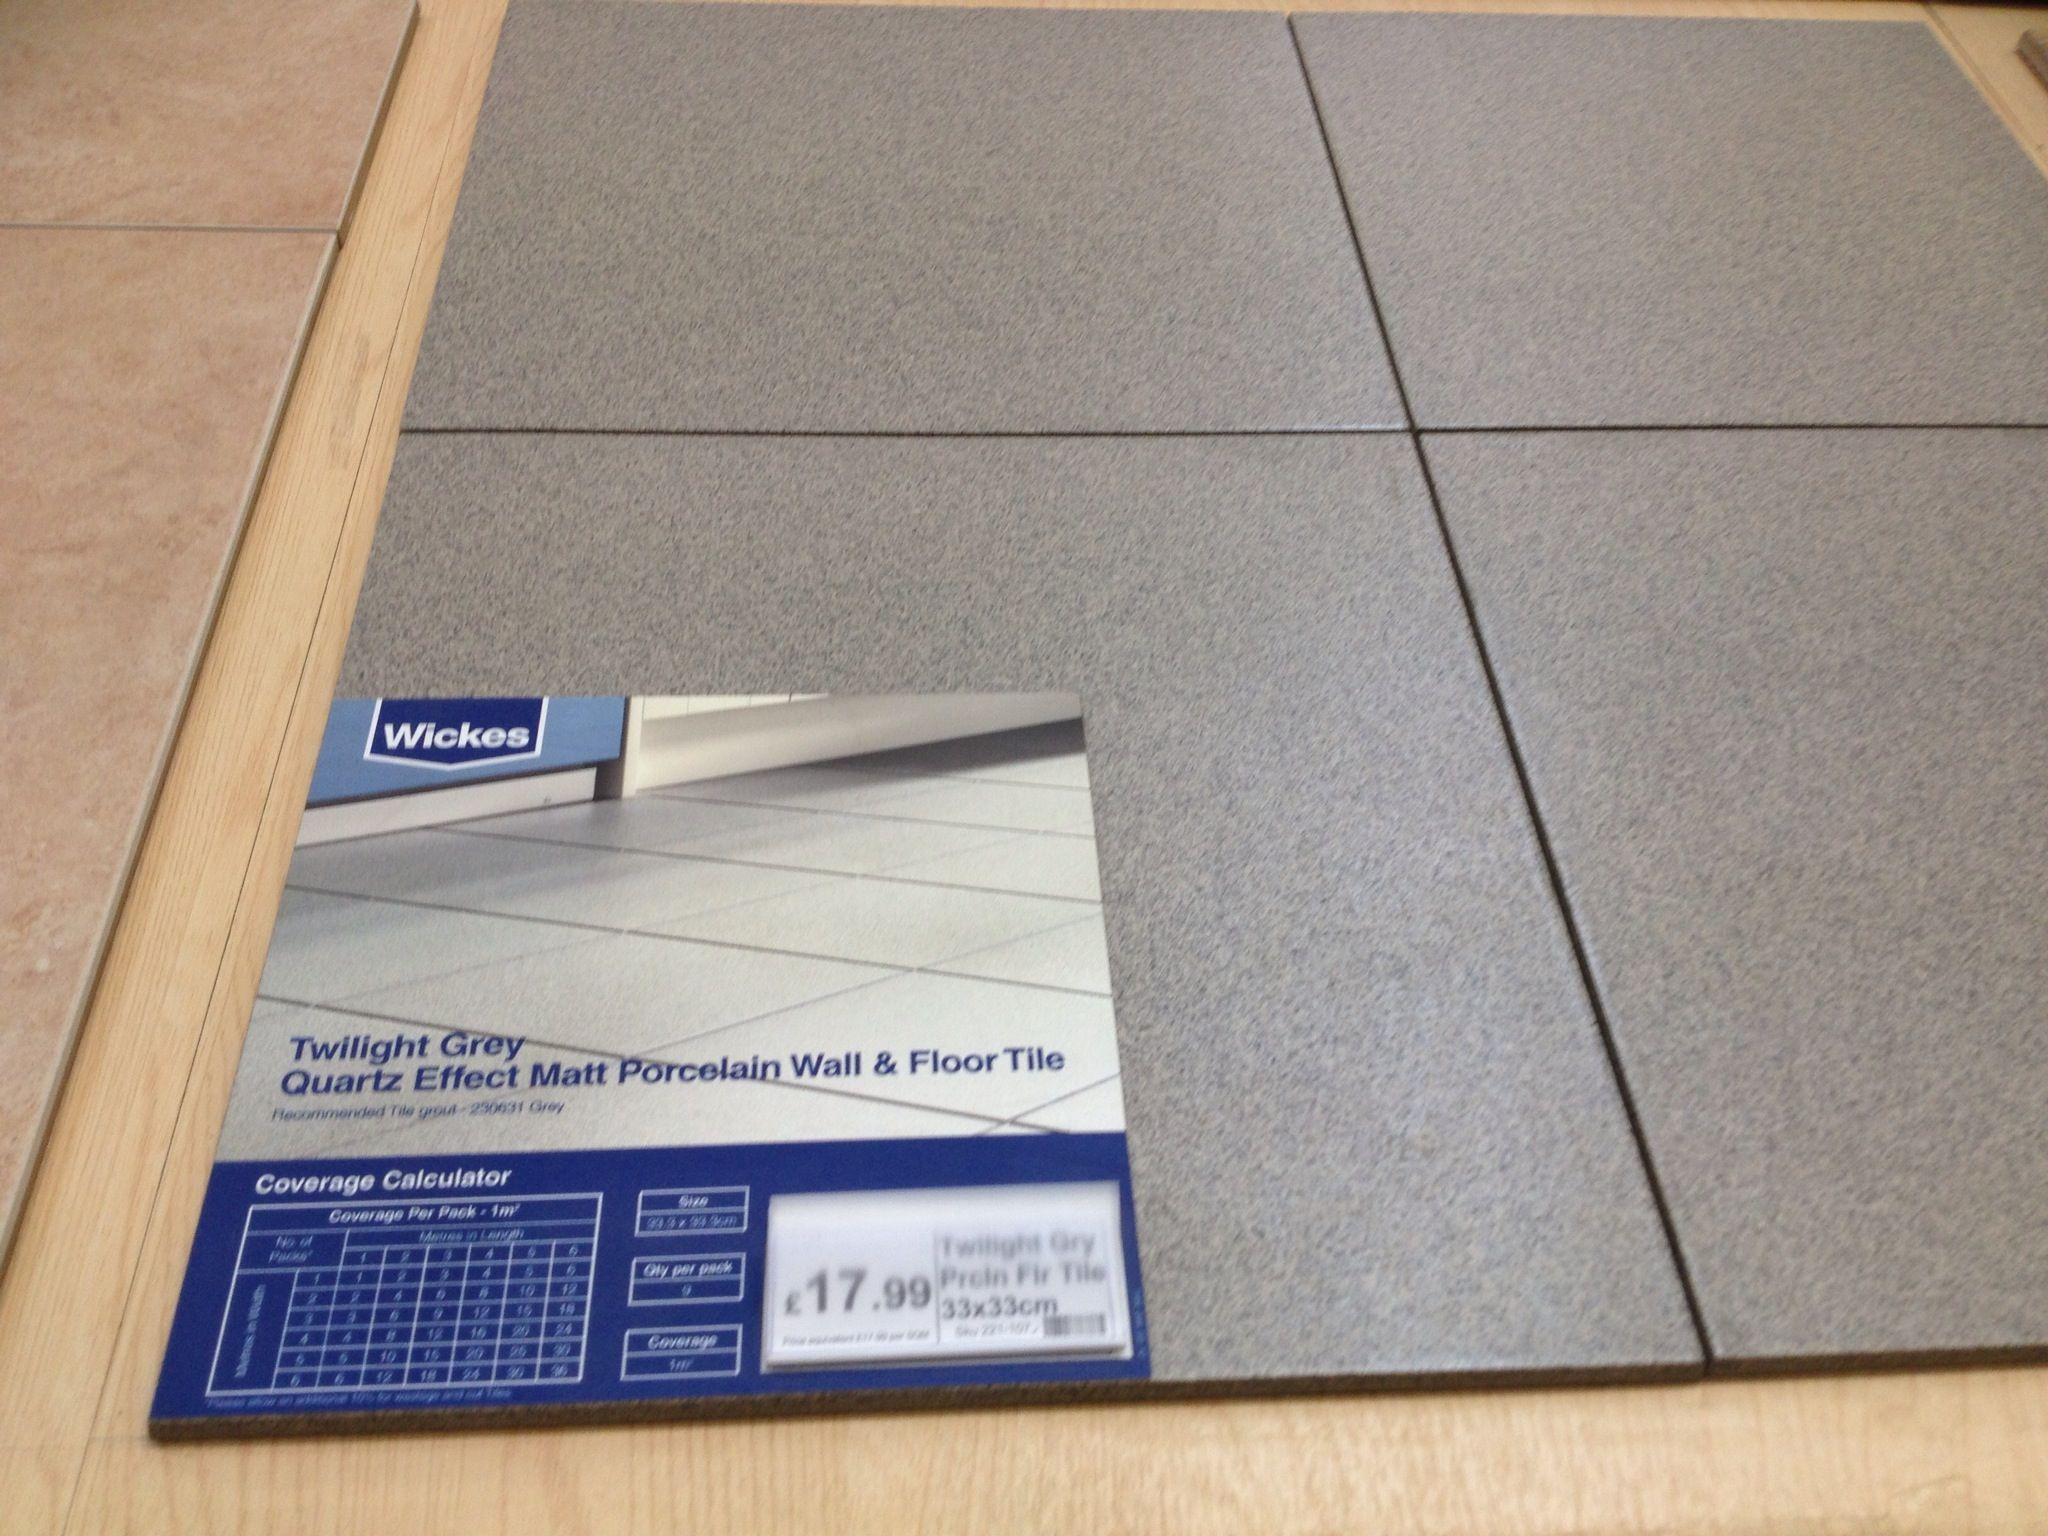 Bathroom toilet floor tiles for cg from wickes moyle house bathroom toilet floor tiles for cg from wickes dailygadgetfo Gallery